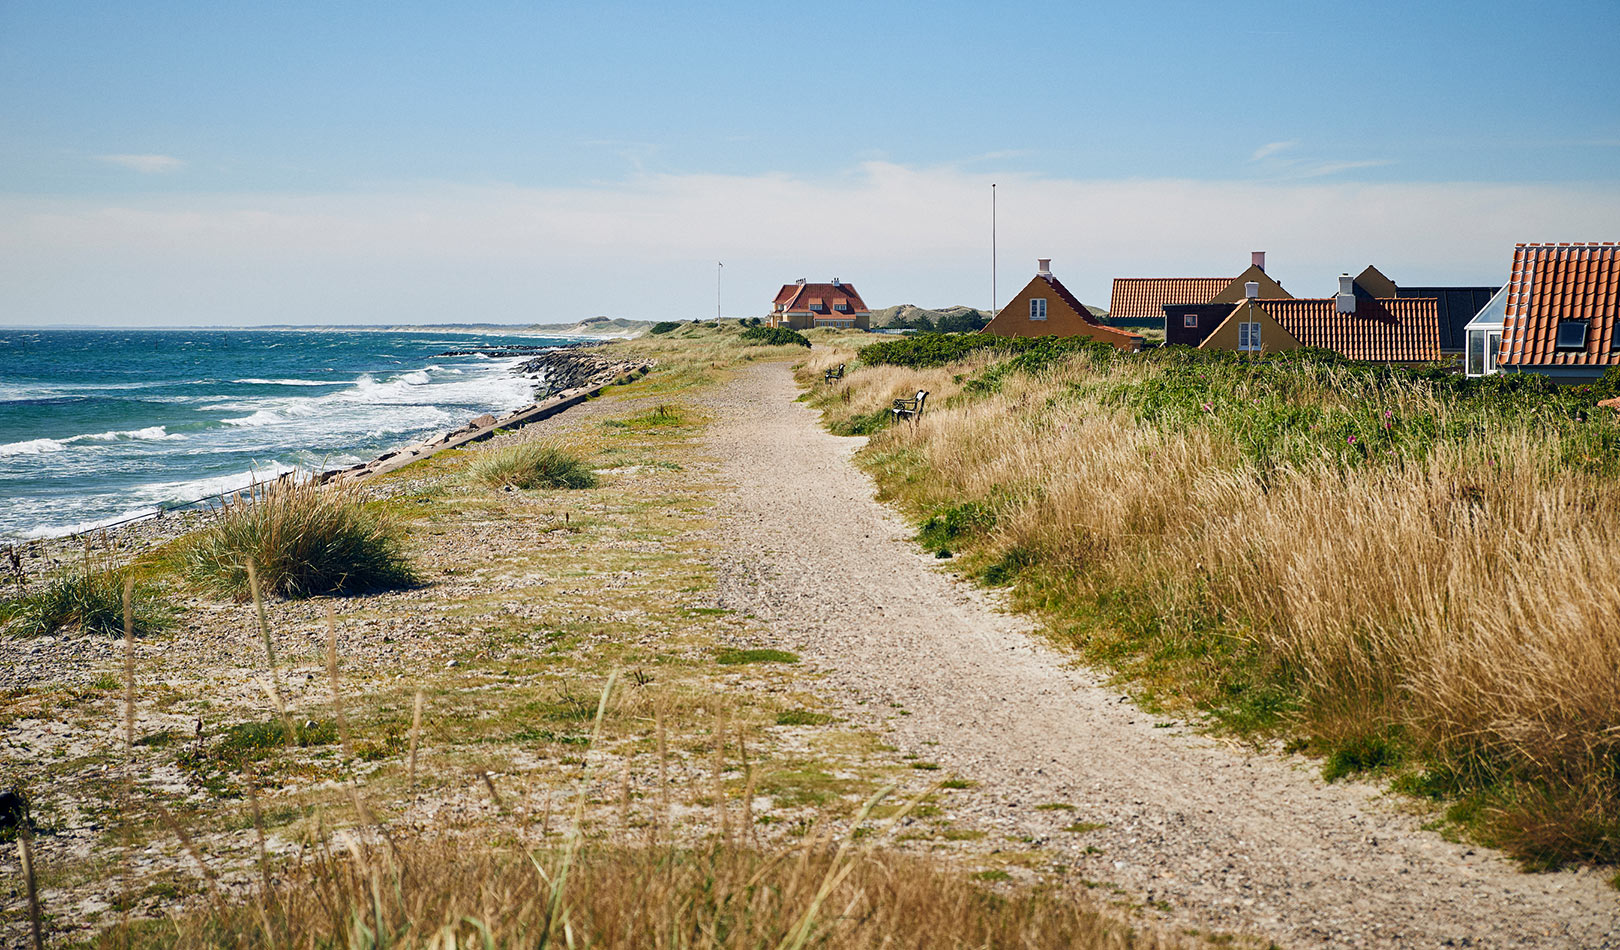 The coast of Skagen, Jutland, Denmark.